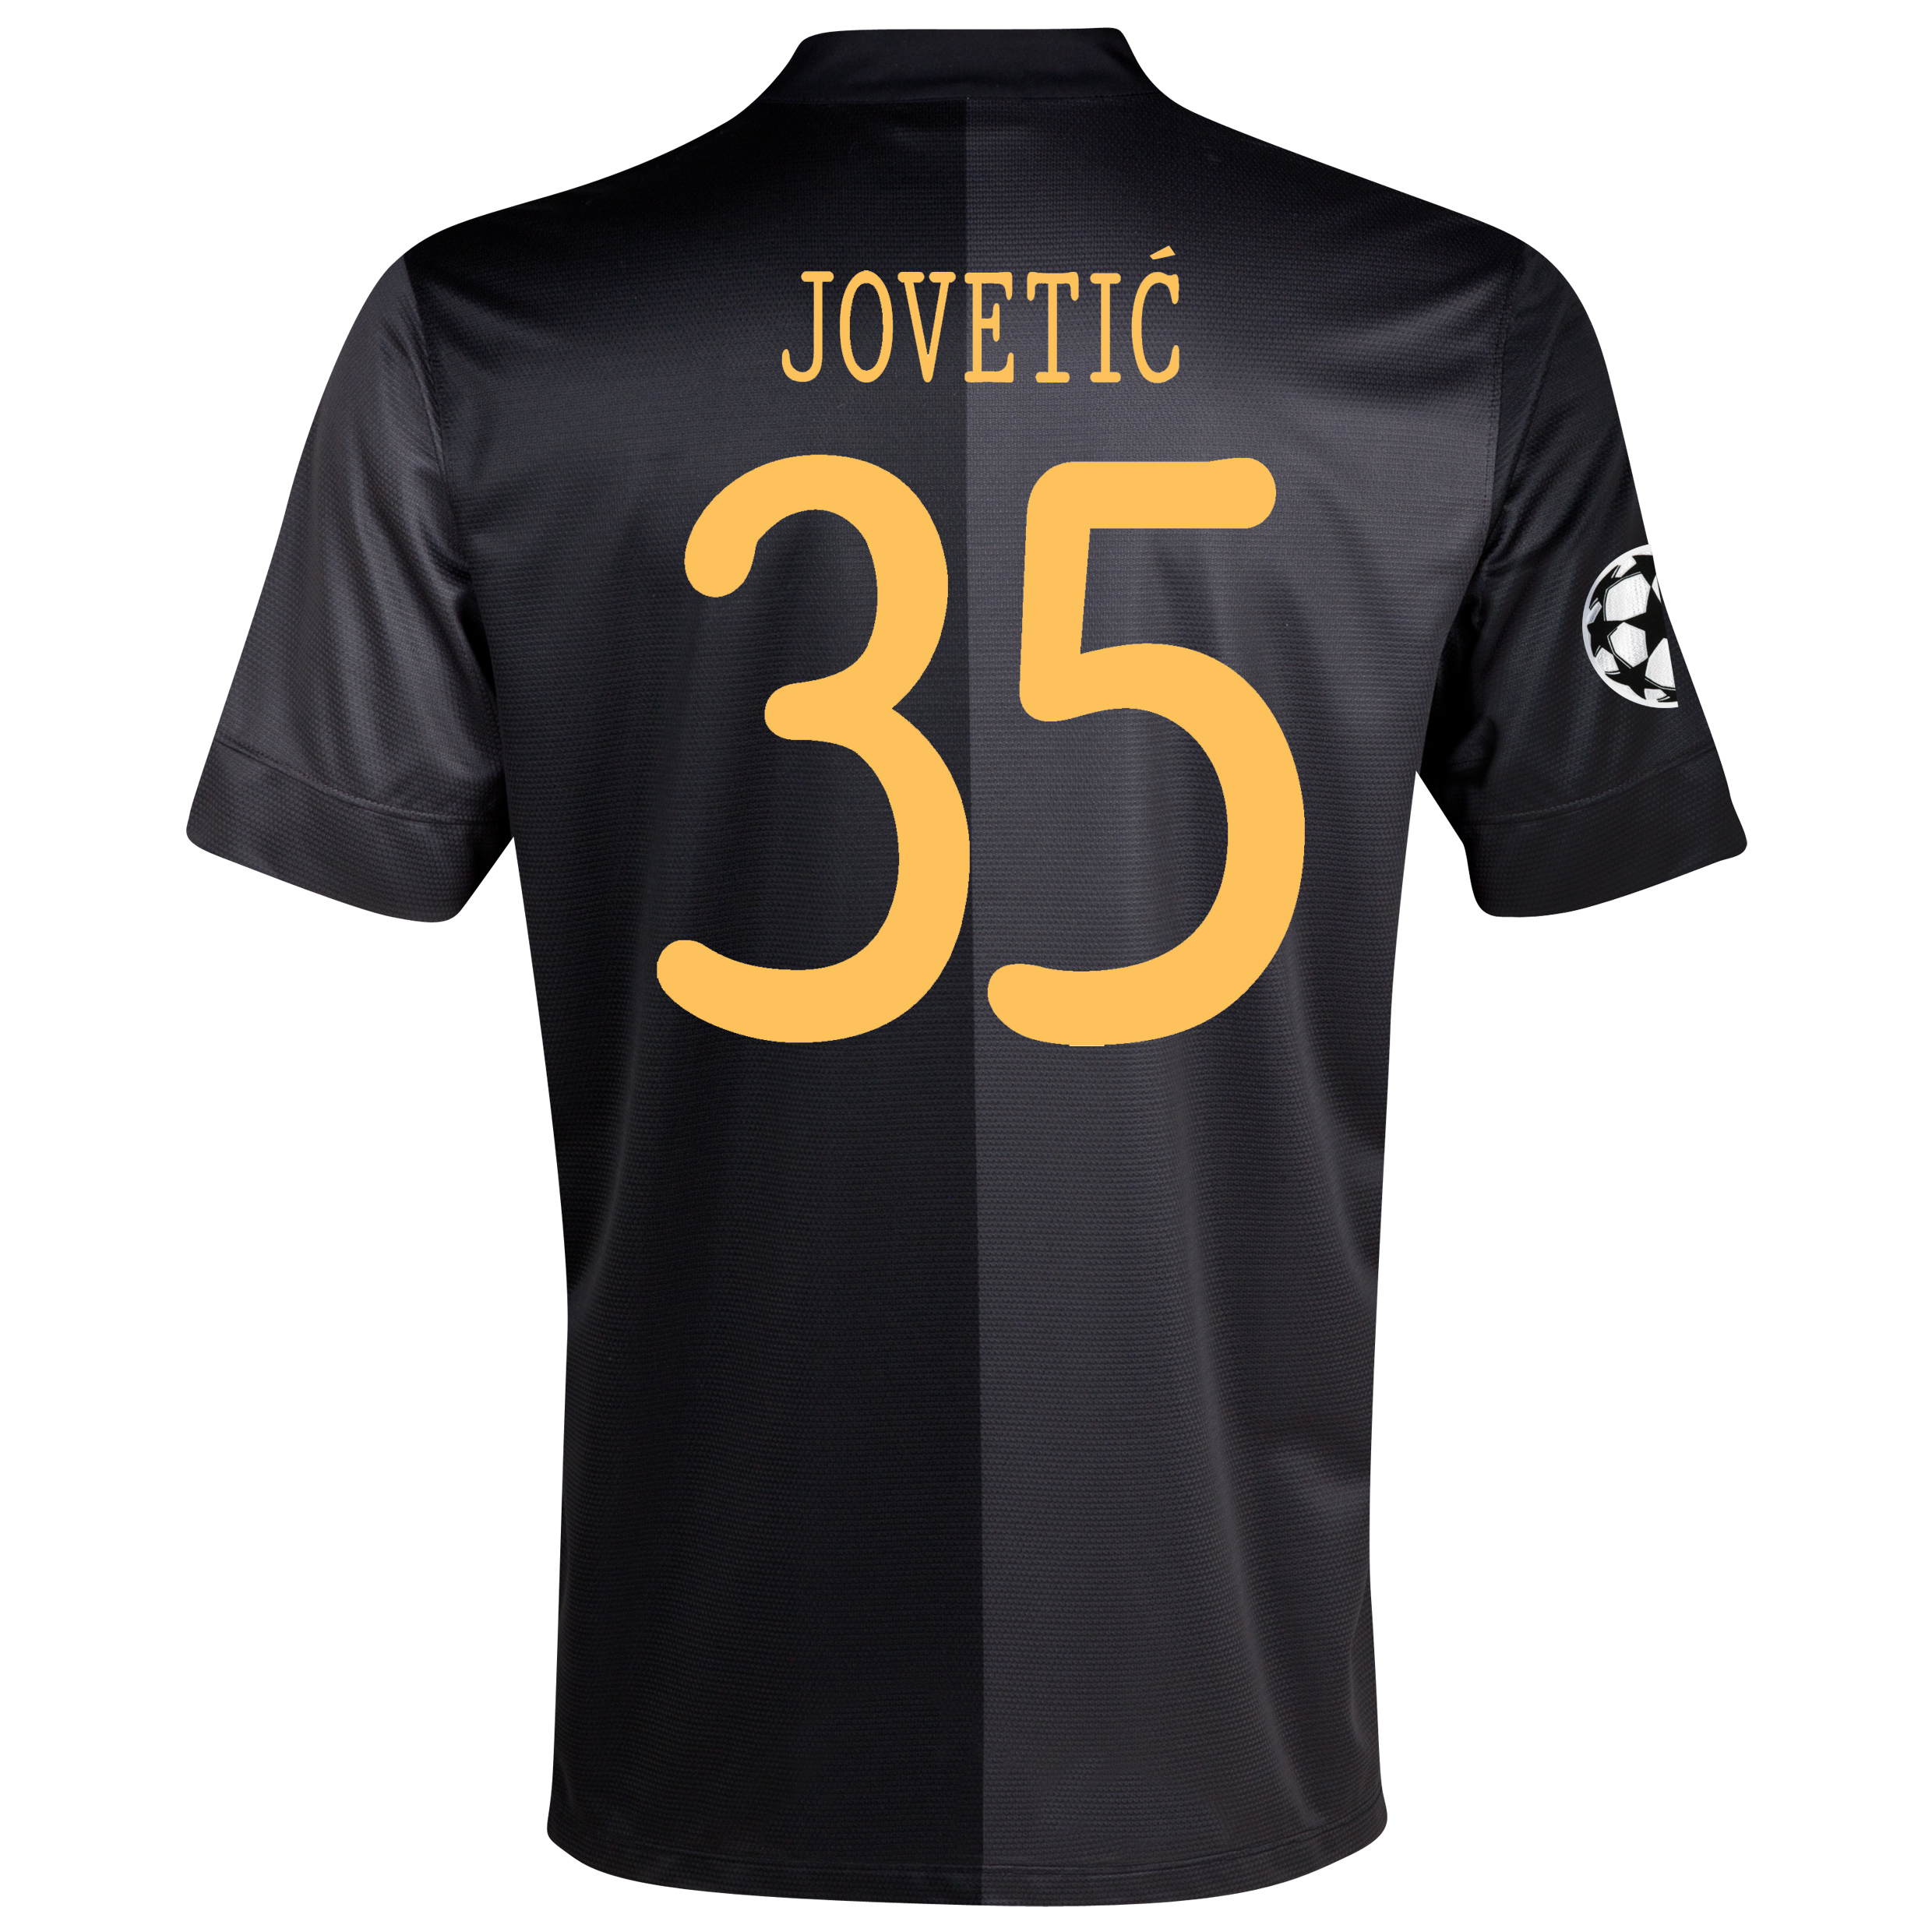 Manchester City UEFA Champions League Away Shirt 2013/14 - Junior with Jovetic 35 printing